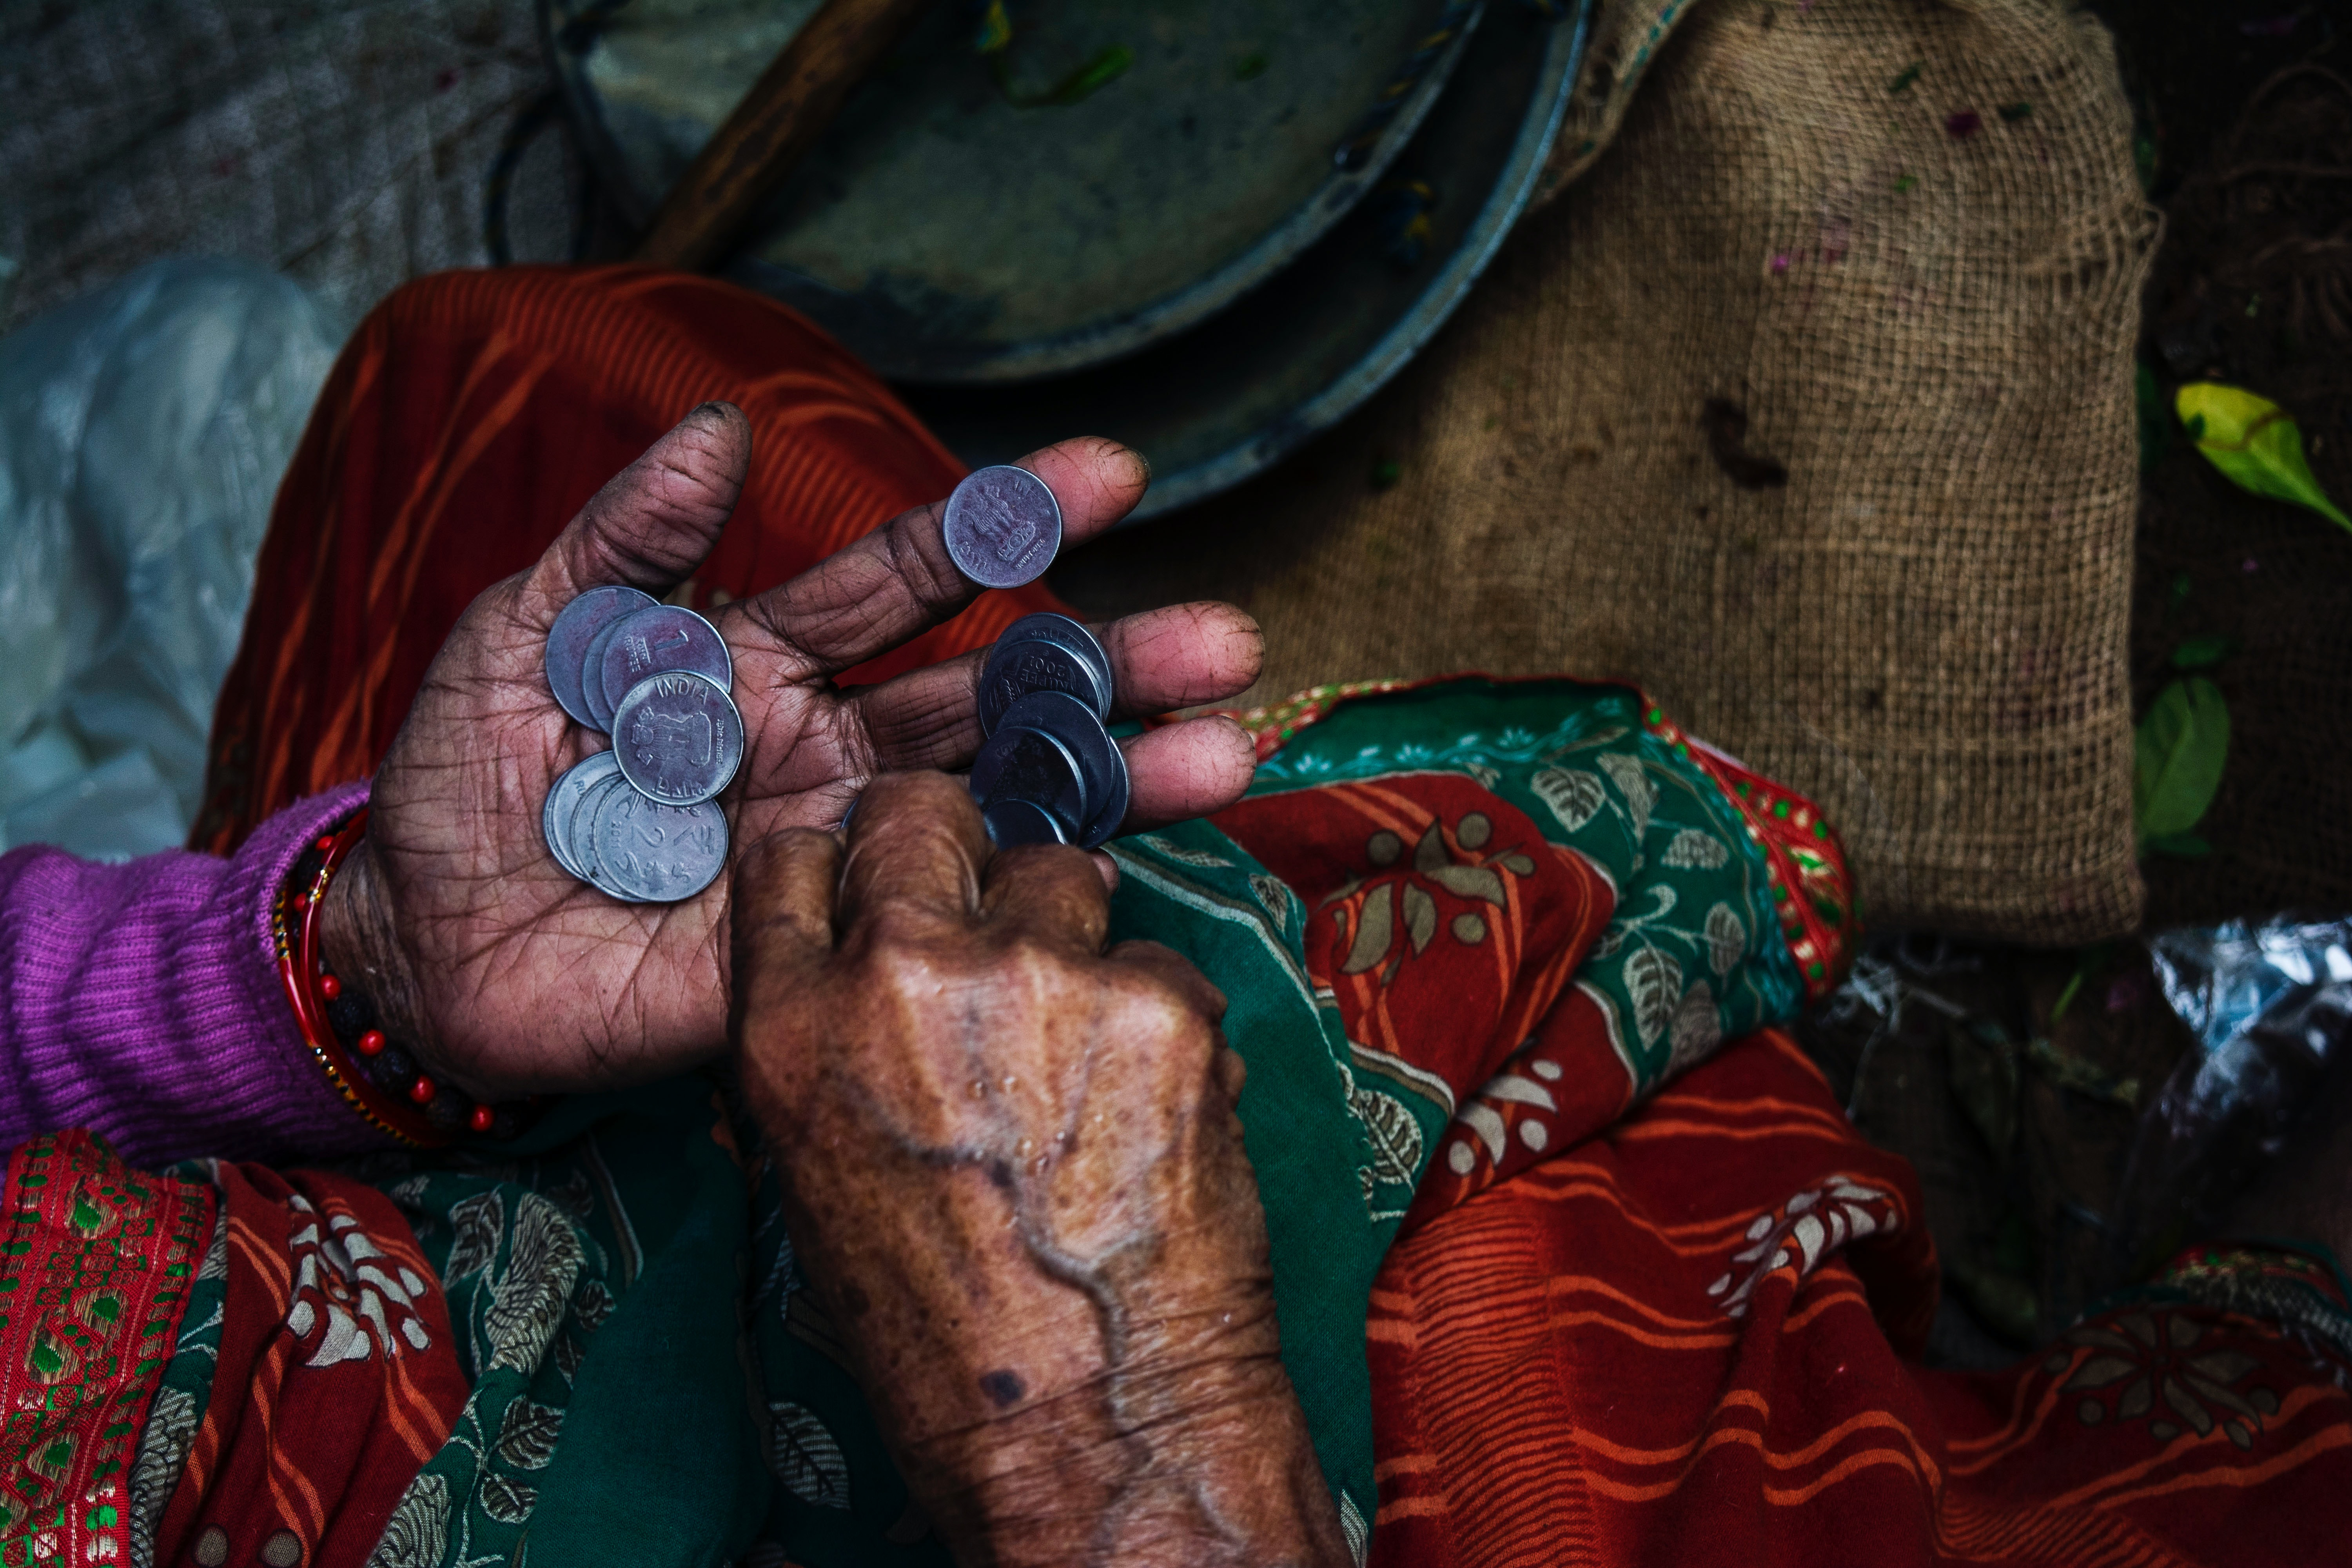 A lady counting coins